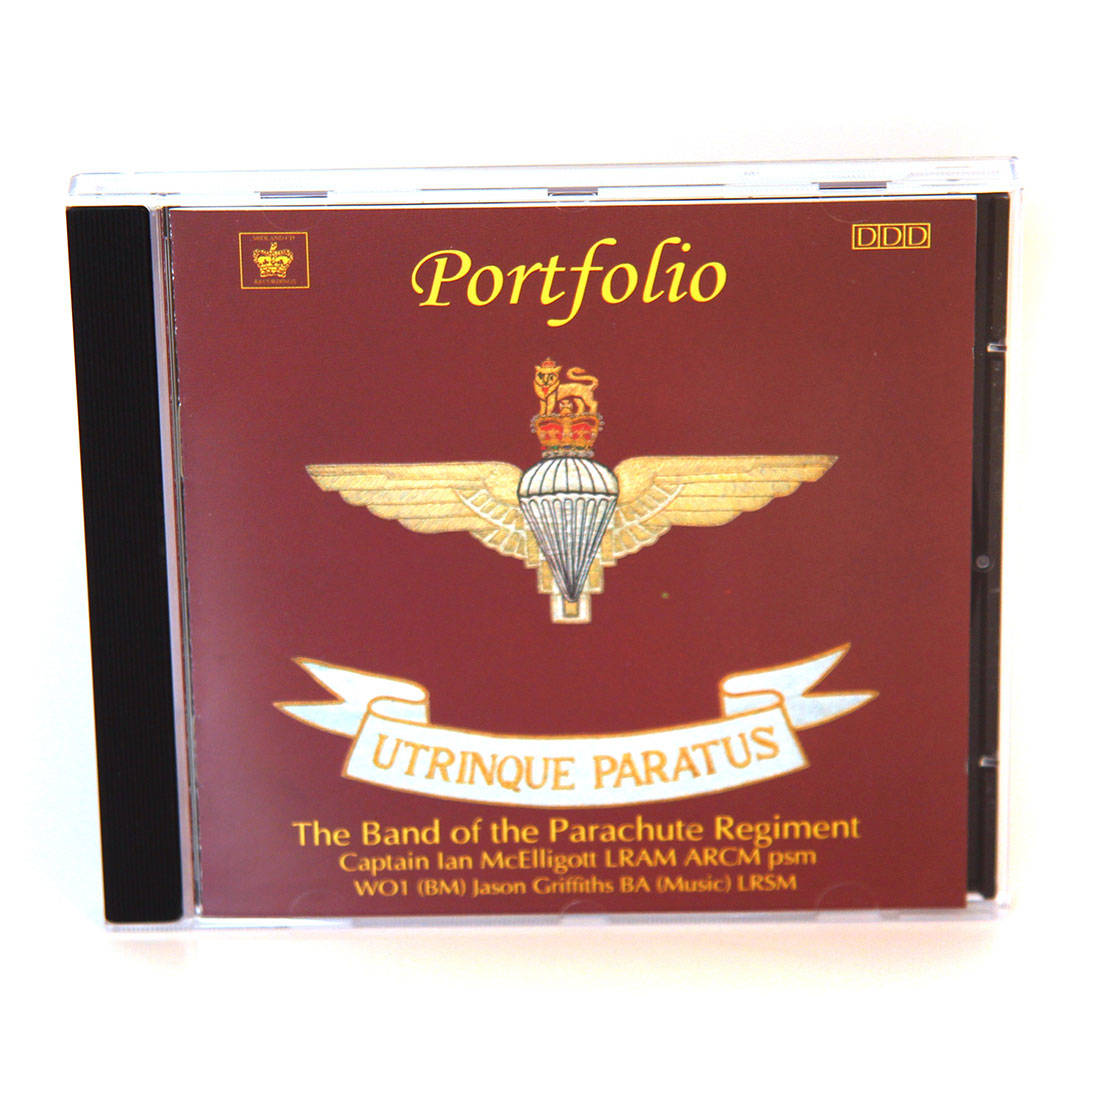 CD - Portfolio by The Band Of The Parachute Regiment